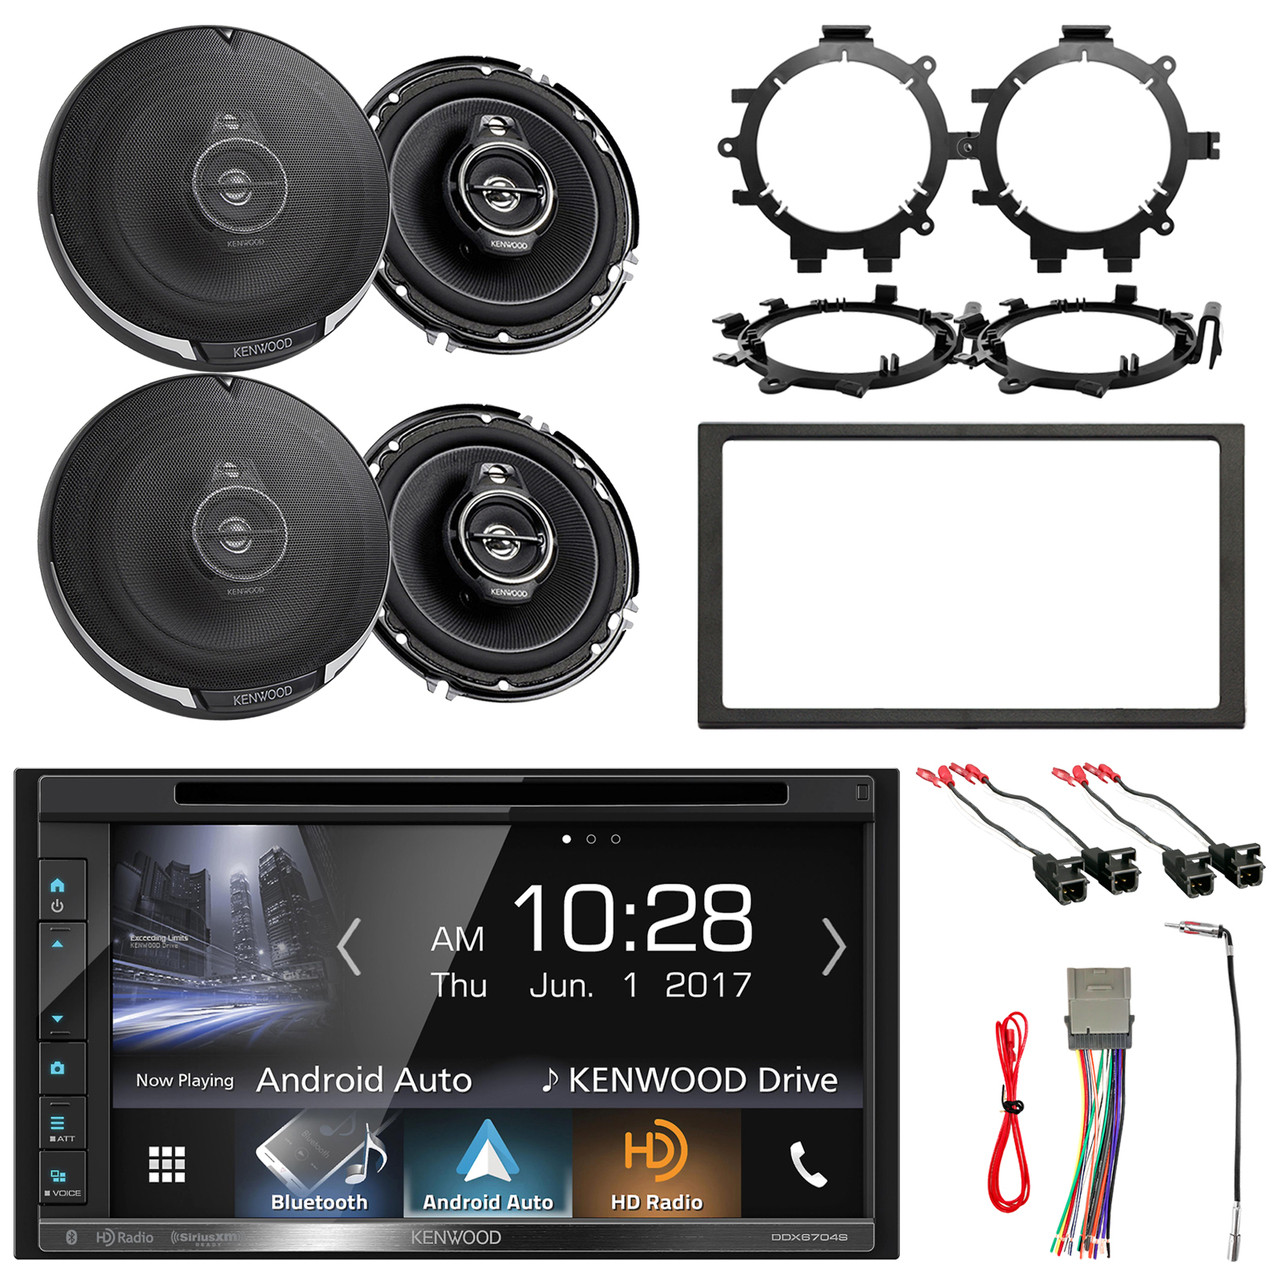 small resolution of kenwood 2 din bluetooth hd am fm receiver 4x 6 5 3 way speakers 4x speaker wire harness 4x speaker mounting brackets dash kit stereo wiring harness